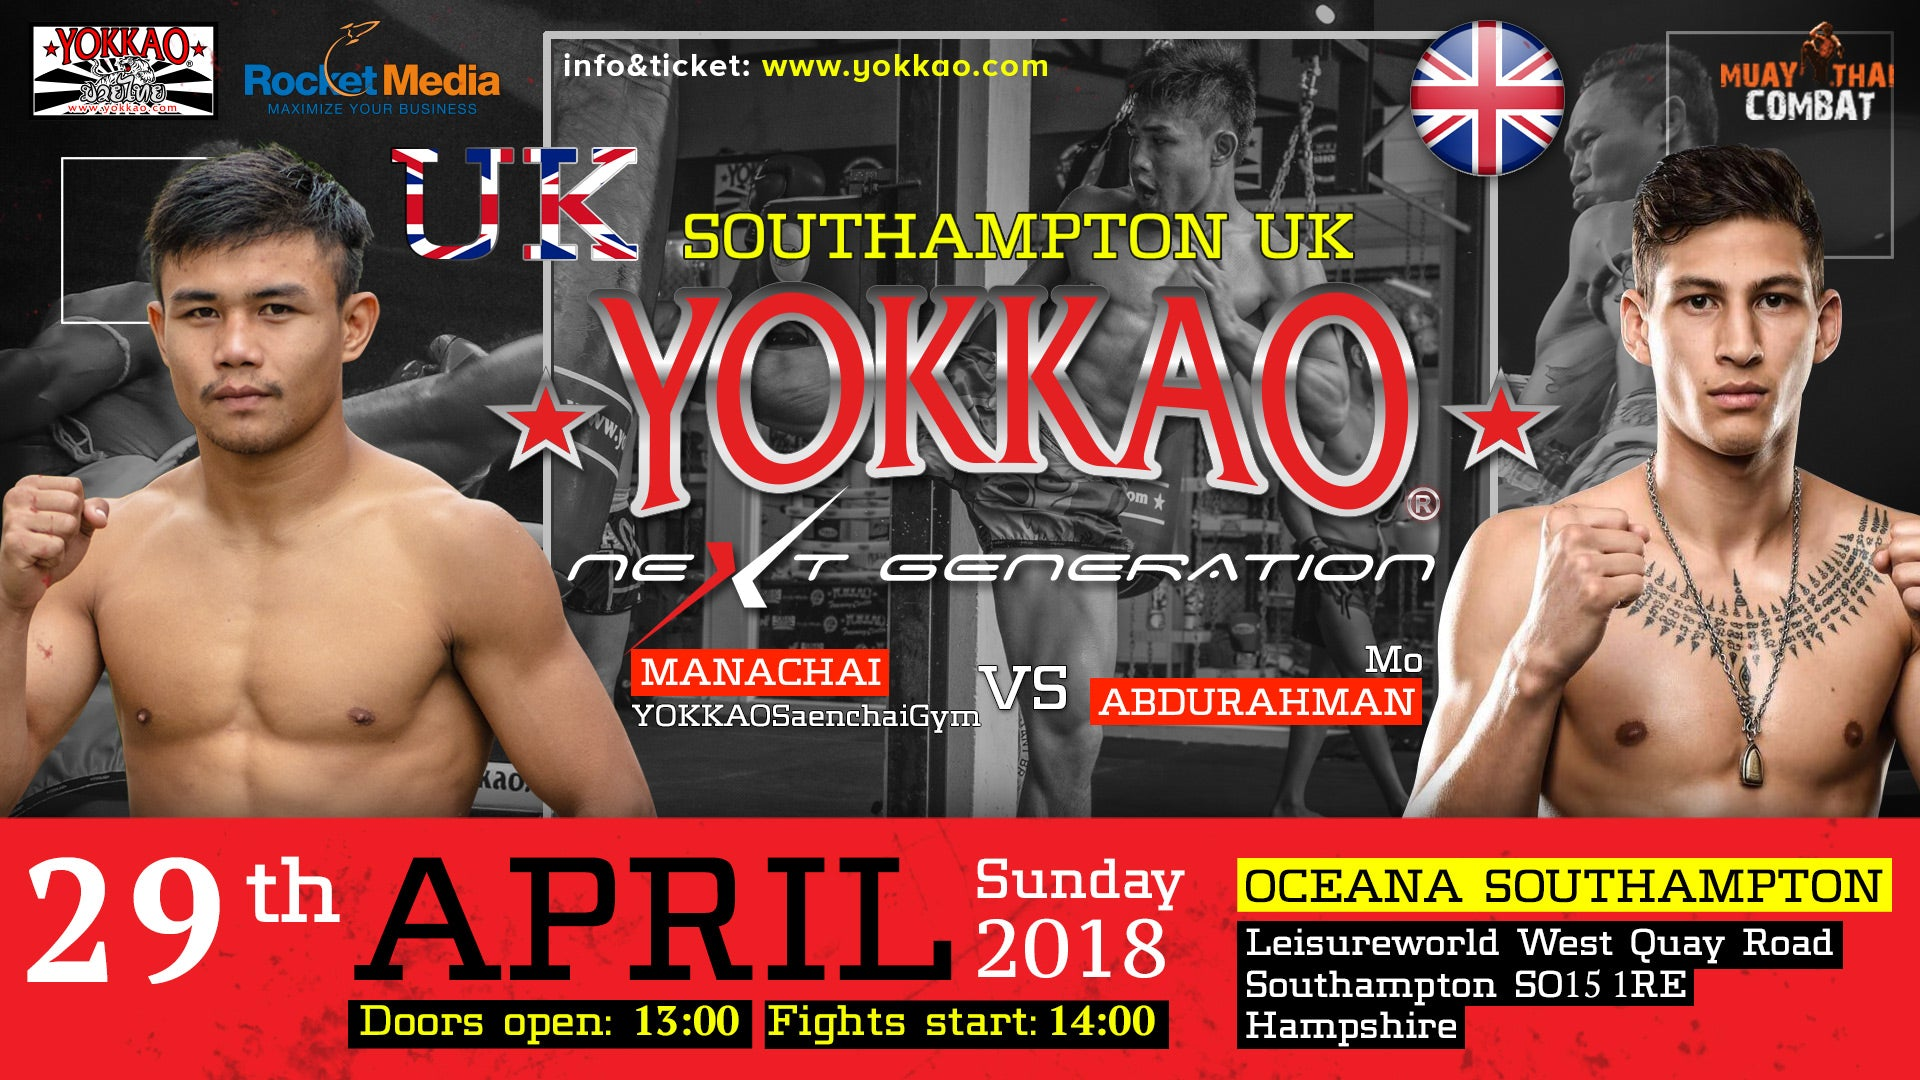 Manachai Faces Rising Kickboxing Star Mo Abdurahman in UK